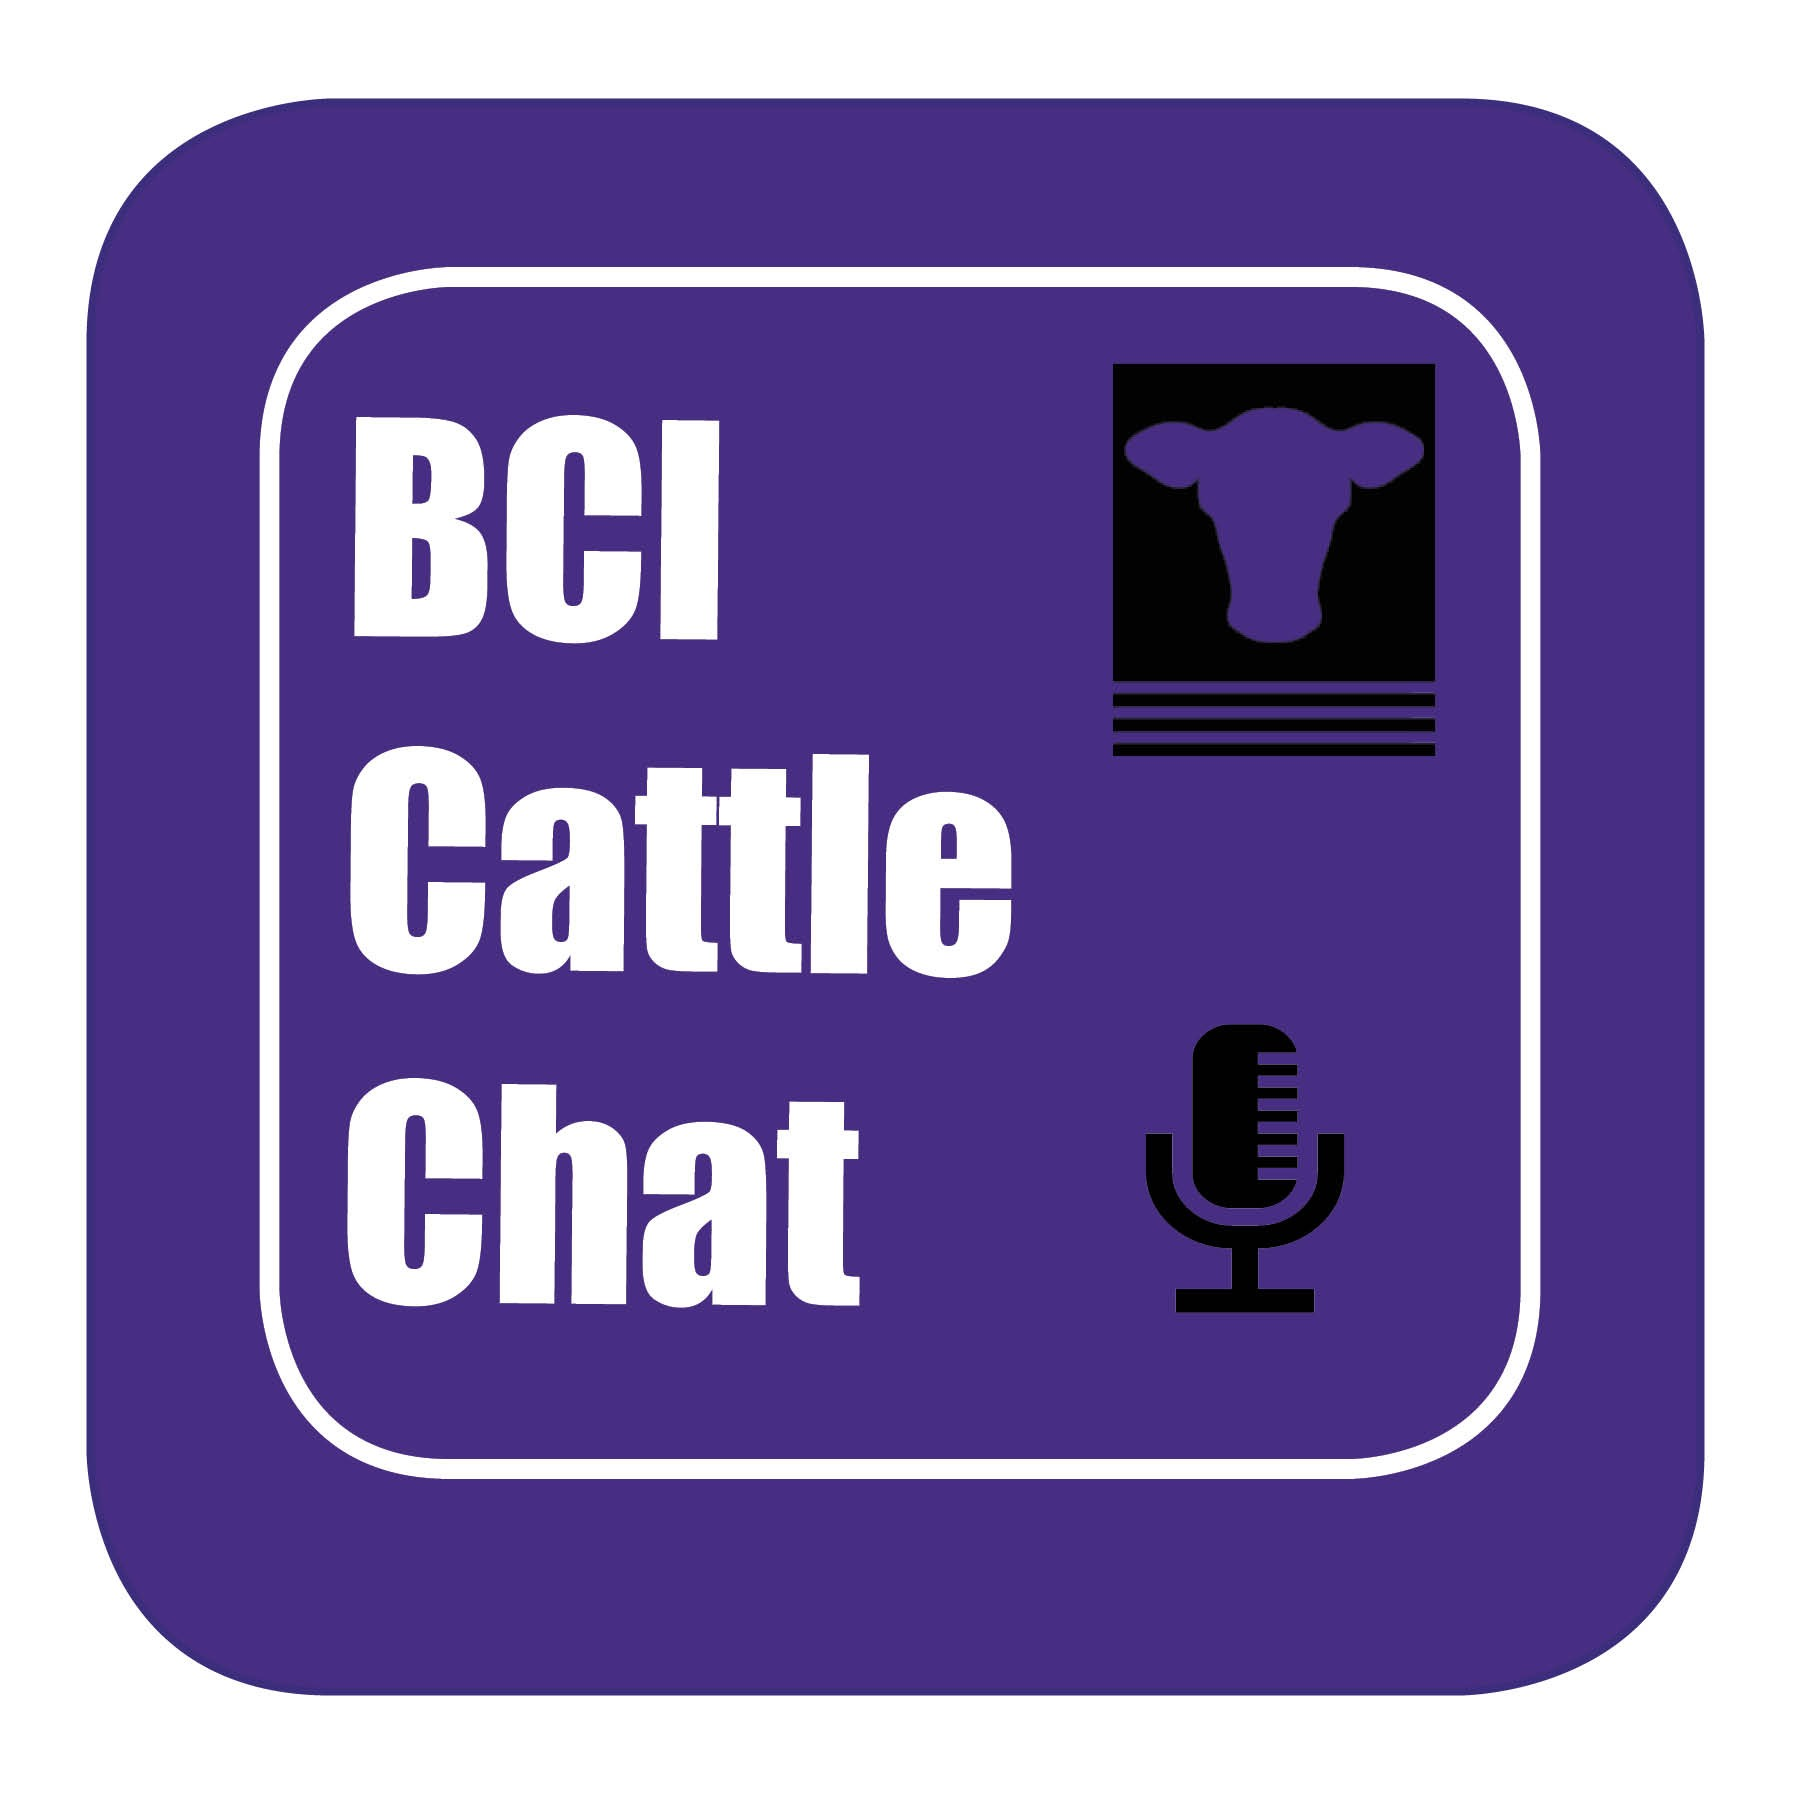 BCI Cattle Chat - Episode 37